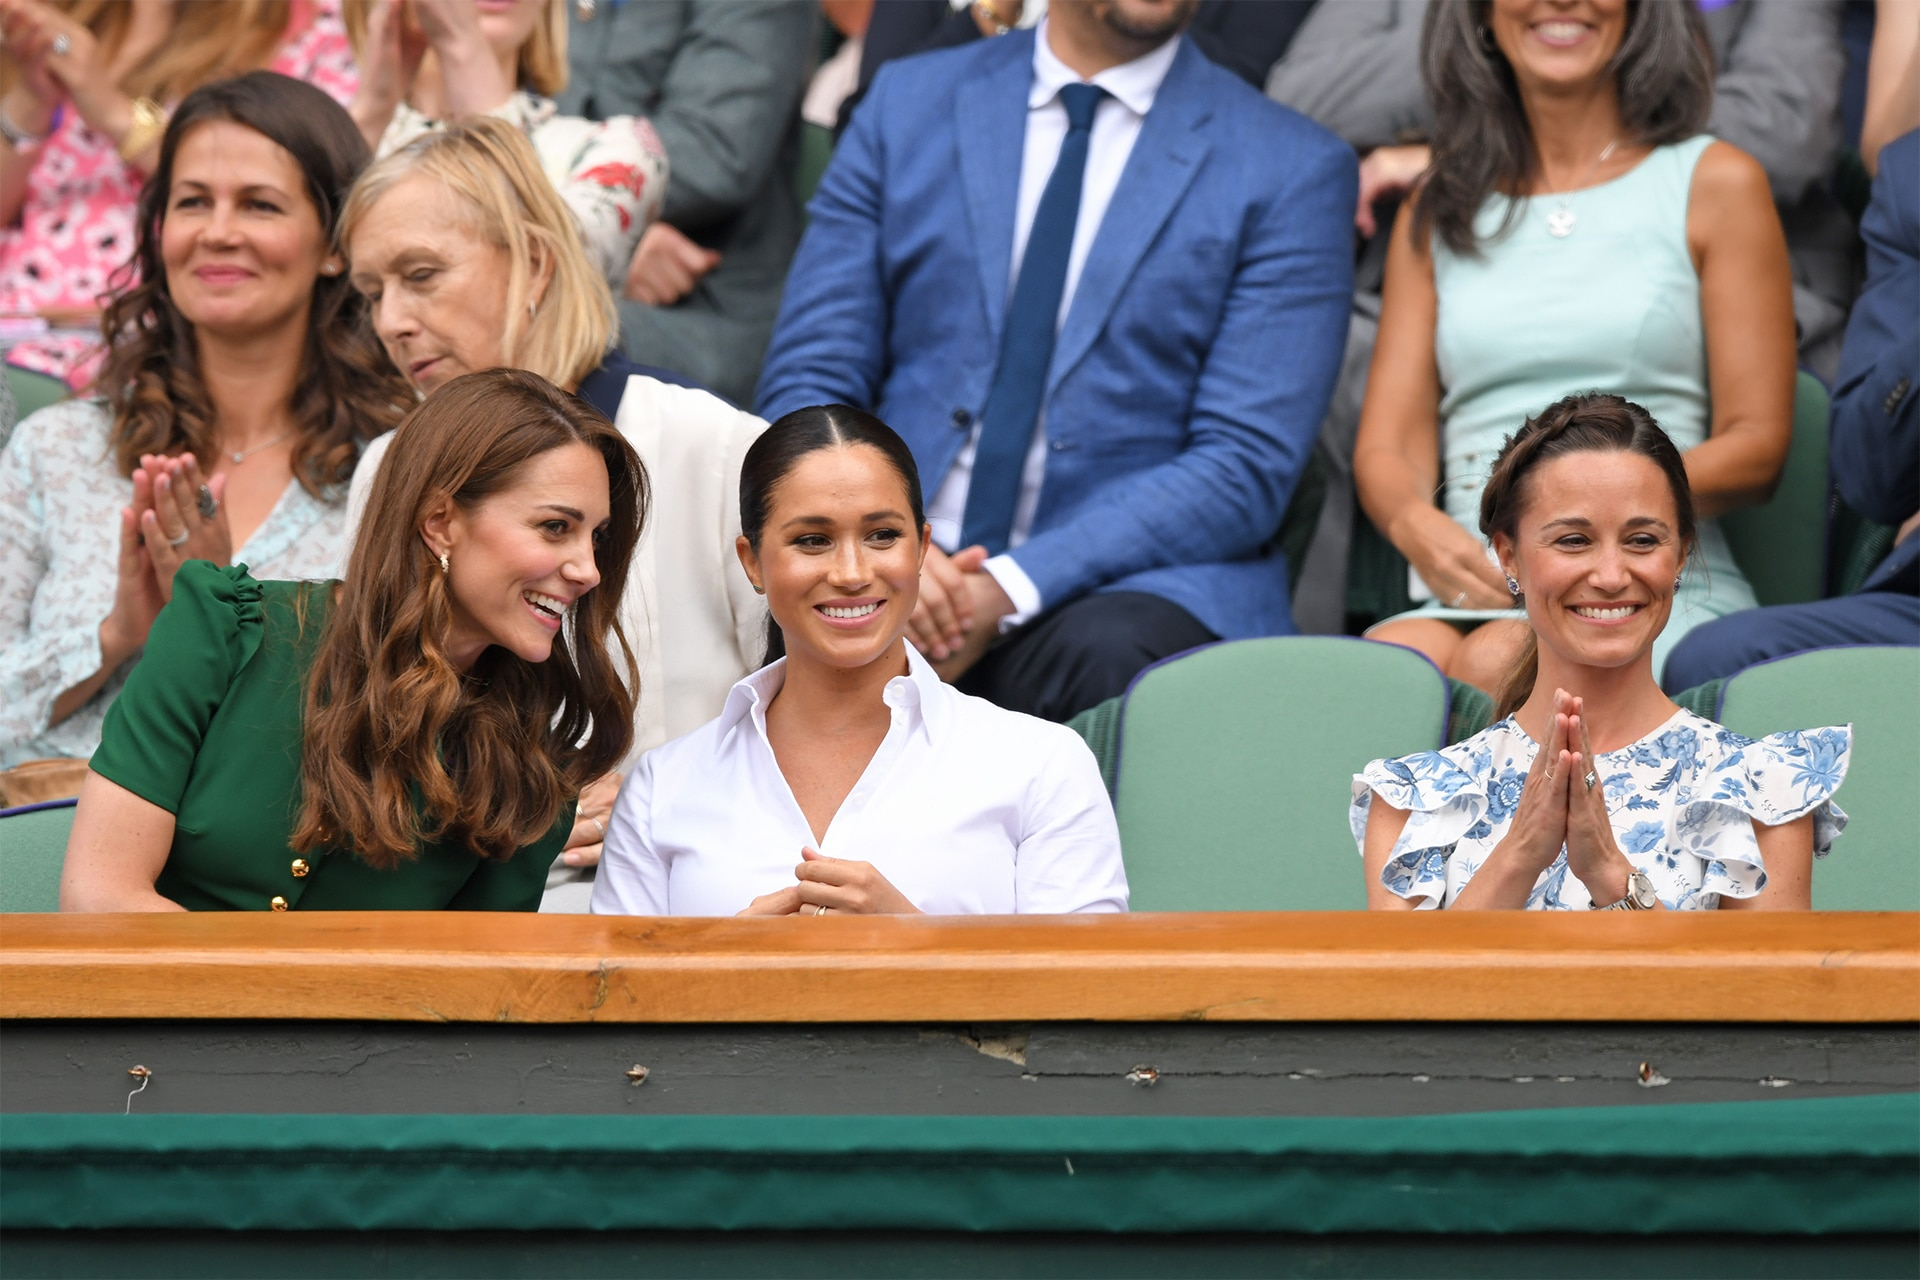 Kate Middleton nails her Wimbledon looks with Meghan Markle, Pippa Middleton and Prince William